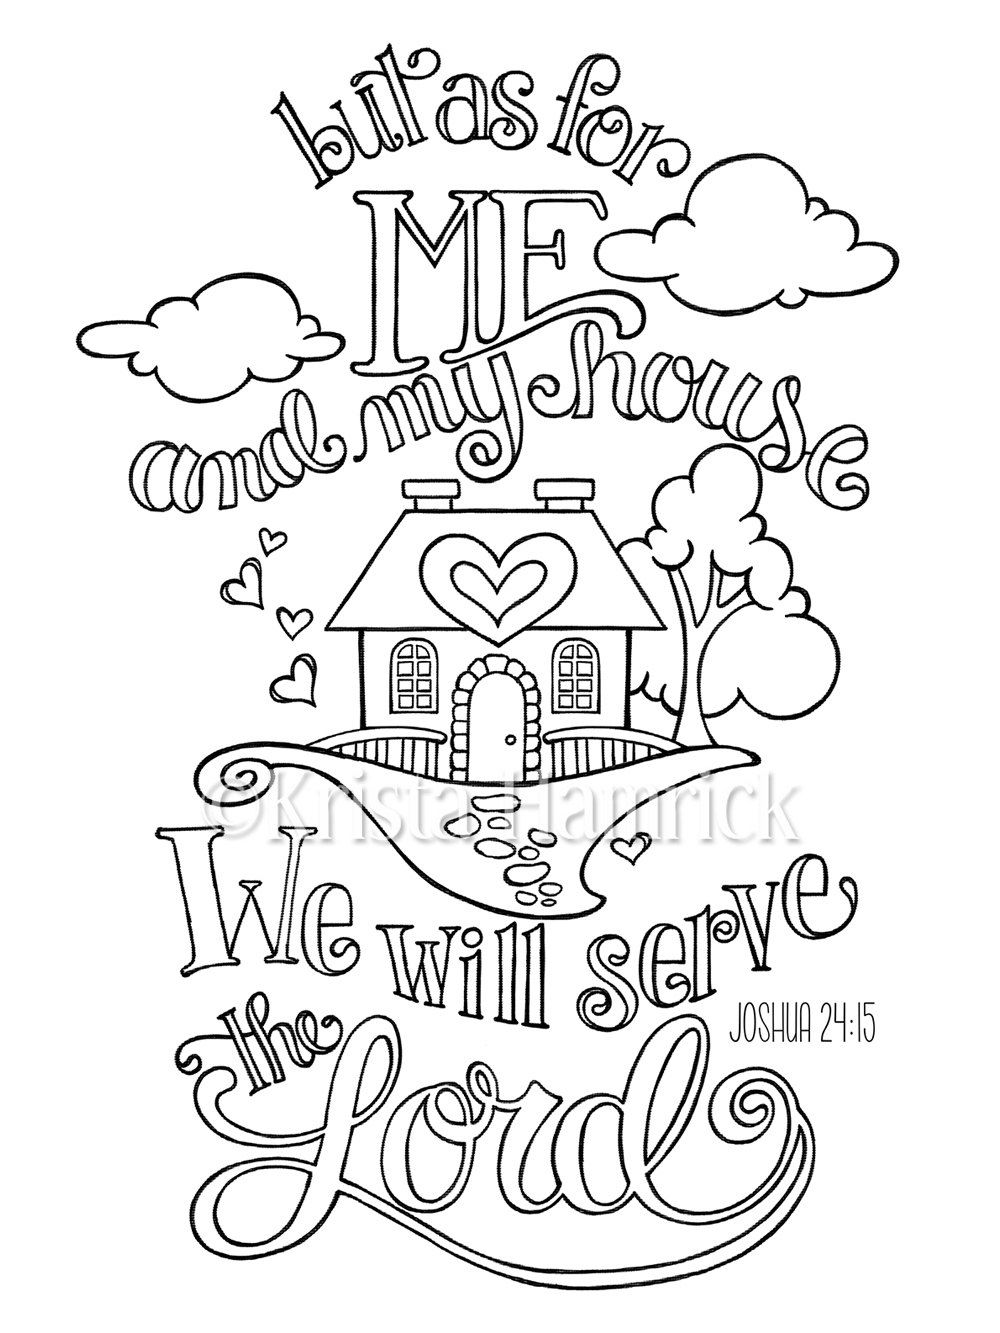 b is for bible coloring page pin on printables is for bible b coloring page